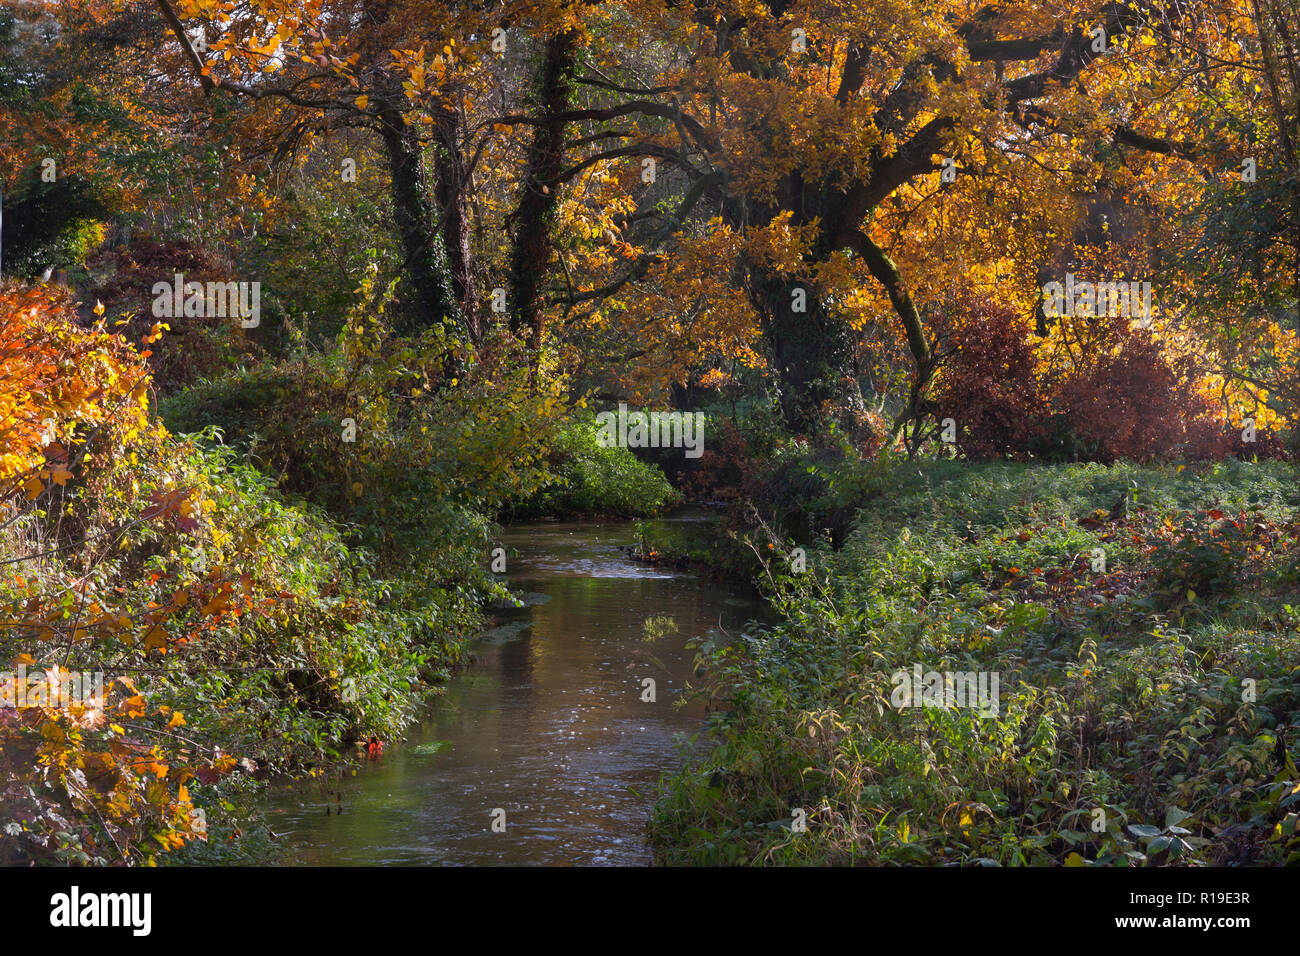 River Wey in autumn feeds the stream to the former watermill at Elstead, Surrey, England Stock Photo